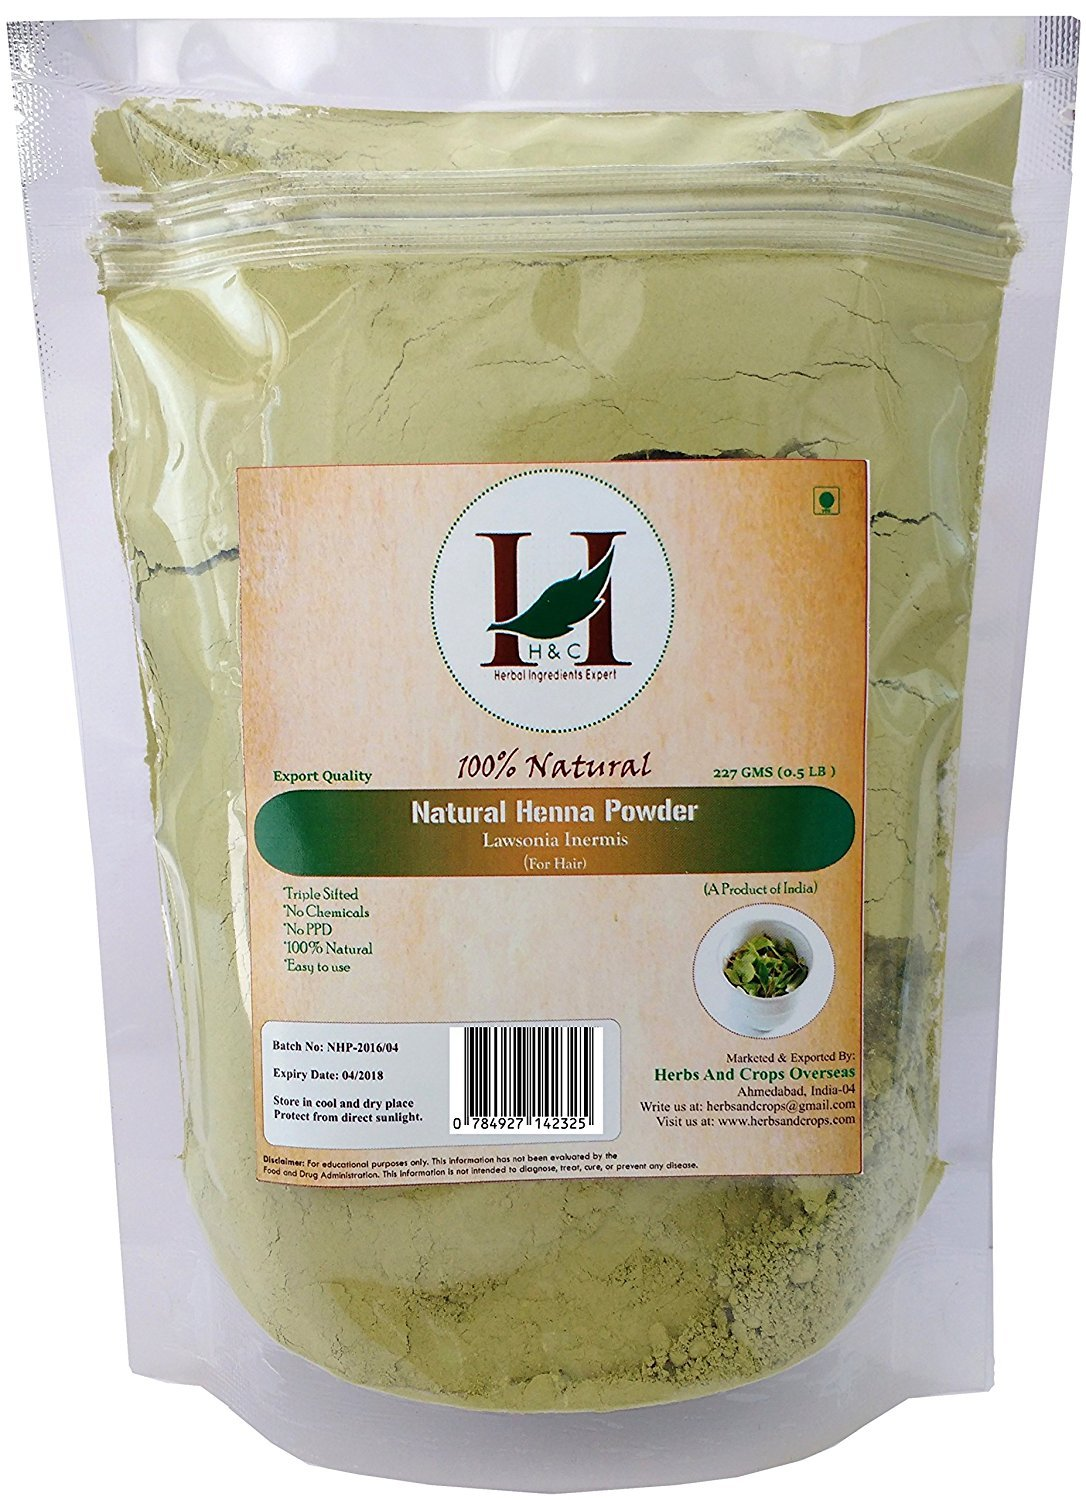 H&C 100% Natural and Pure Henna Powder / Lawsonia Inermis (Organically Grown) 227 gms (1/2 LB) for Hair